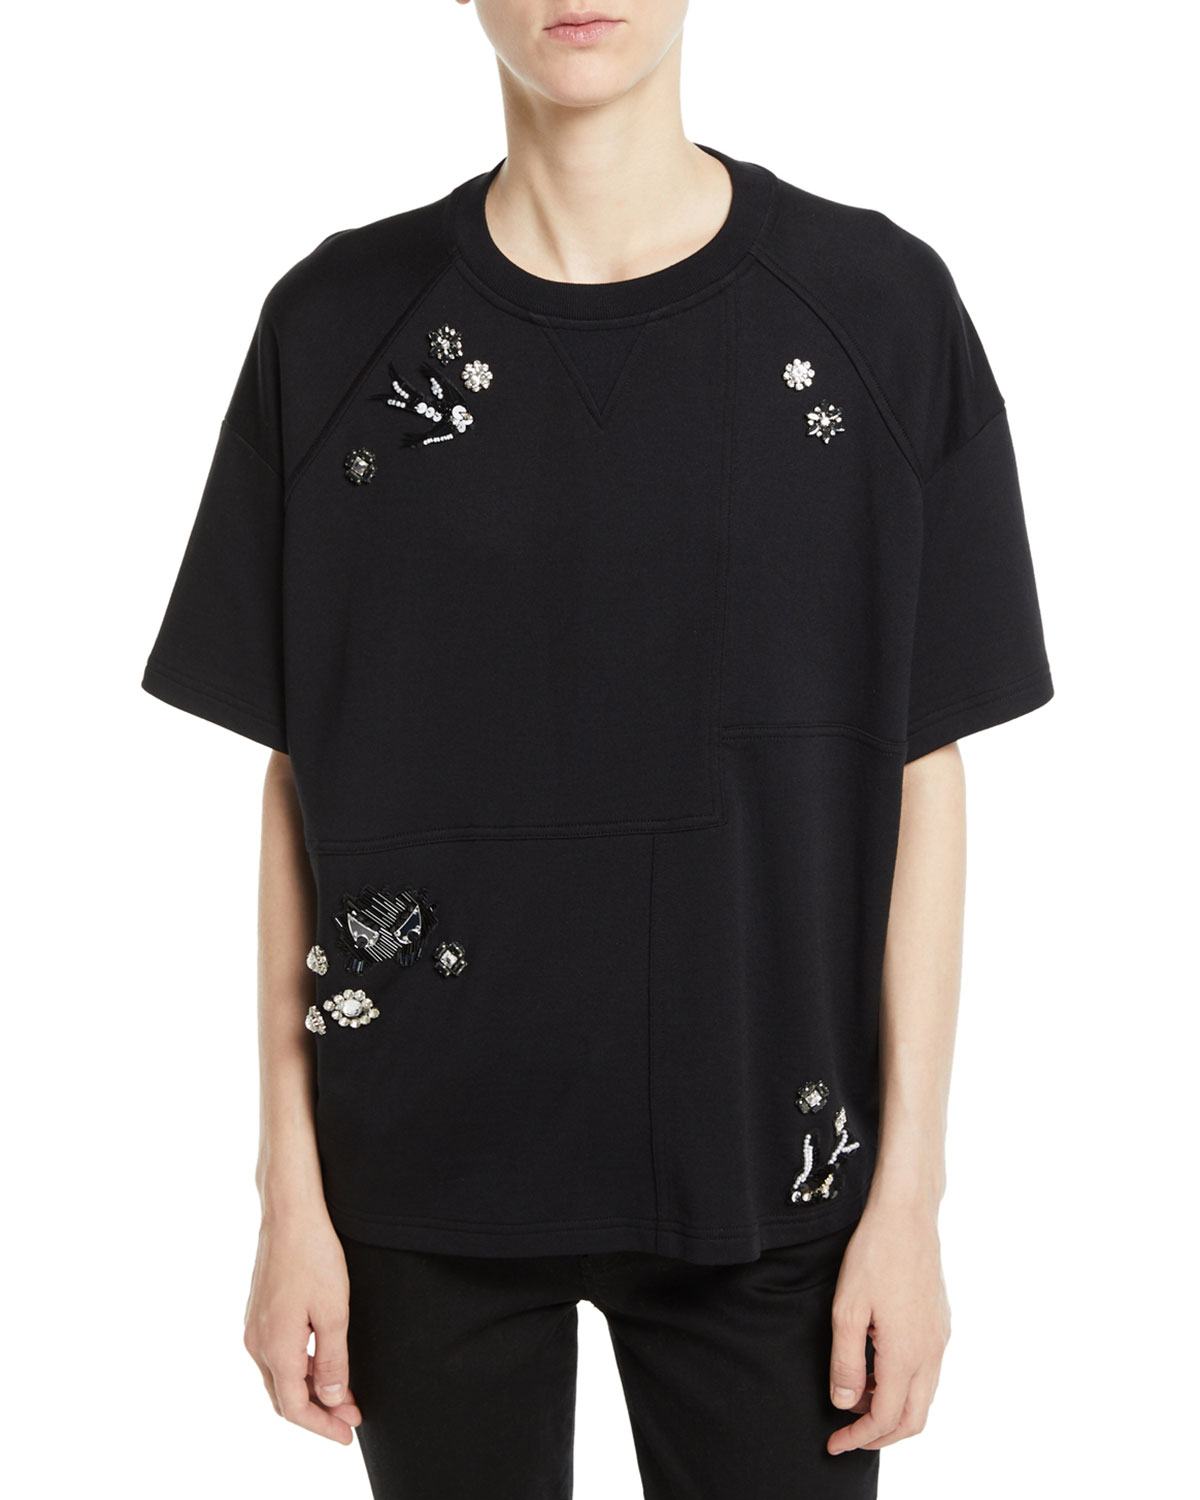 Embellished Short-Sleeve Graphic Sweatshirt